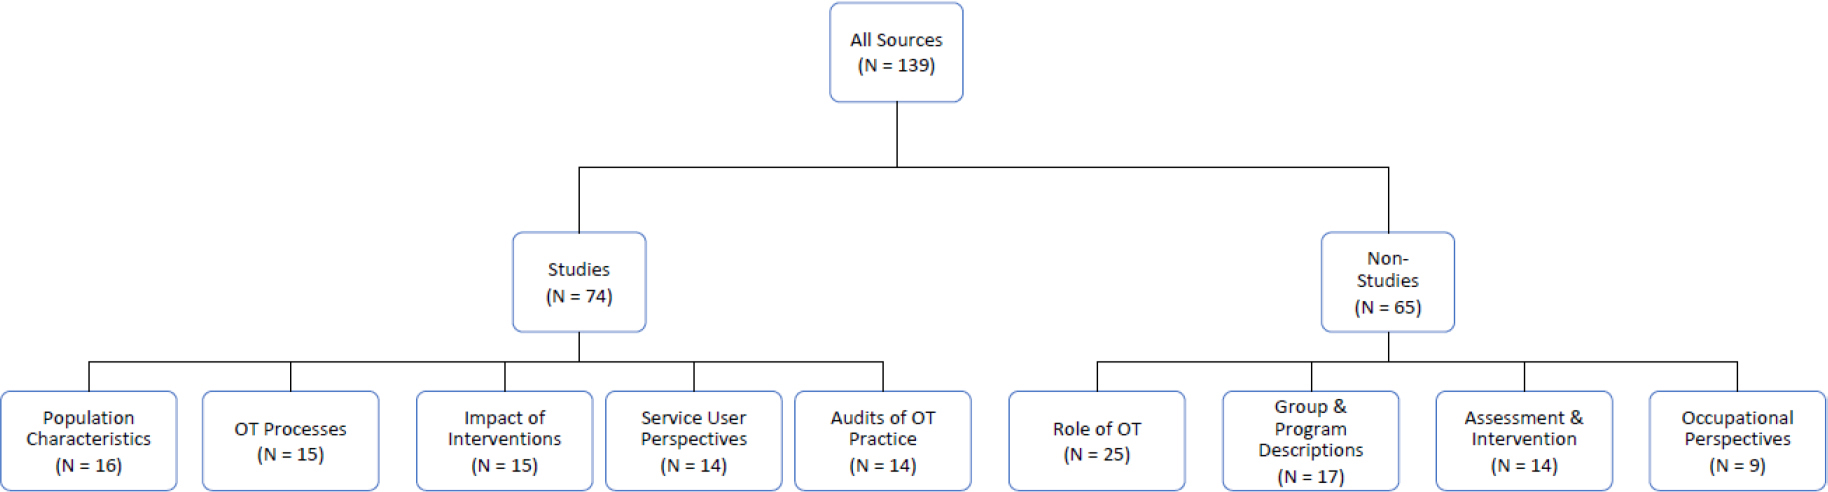 Distribution of Sources in the Scoping Review